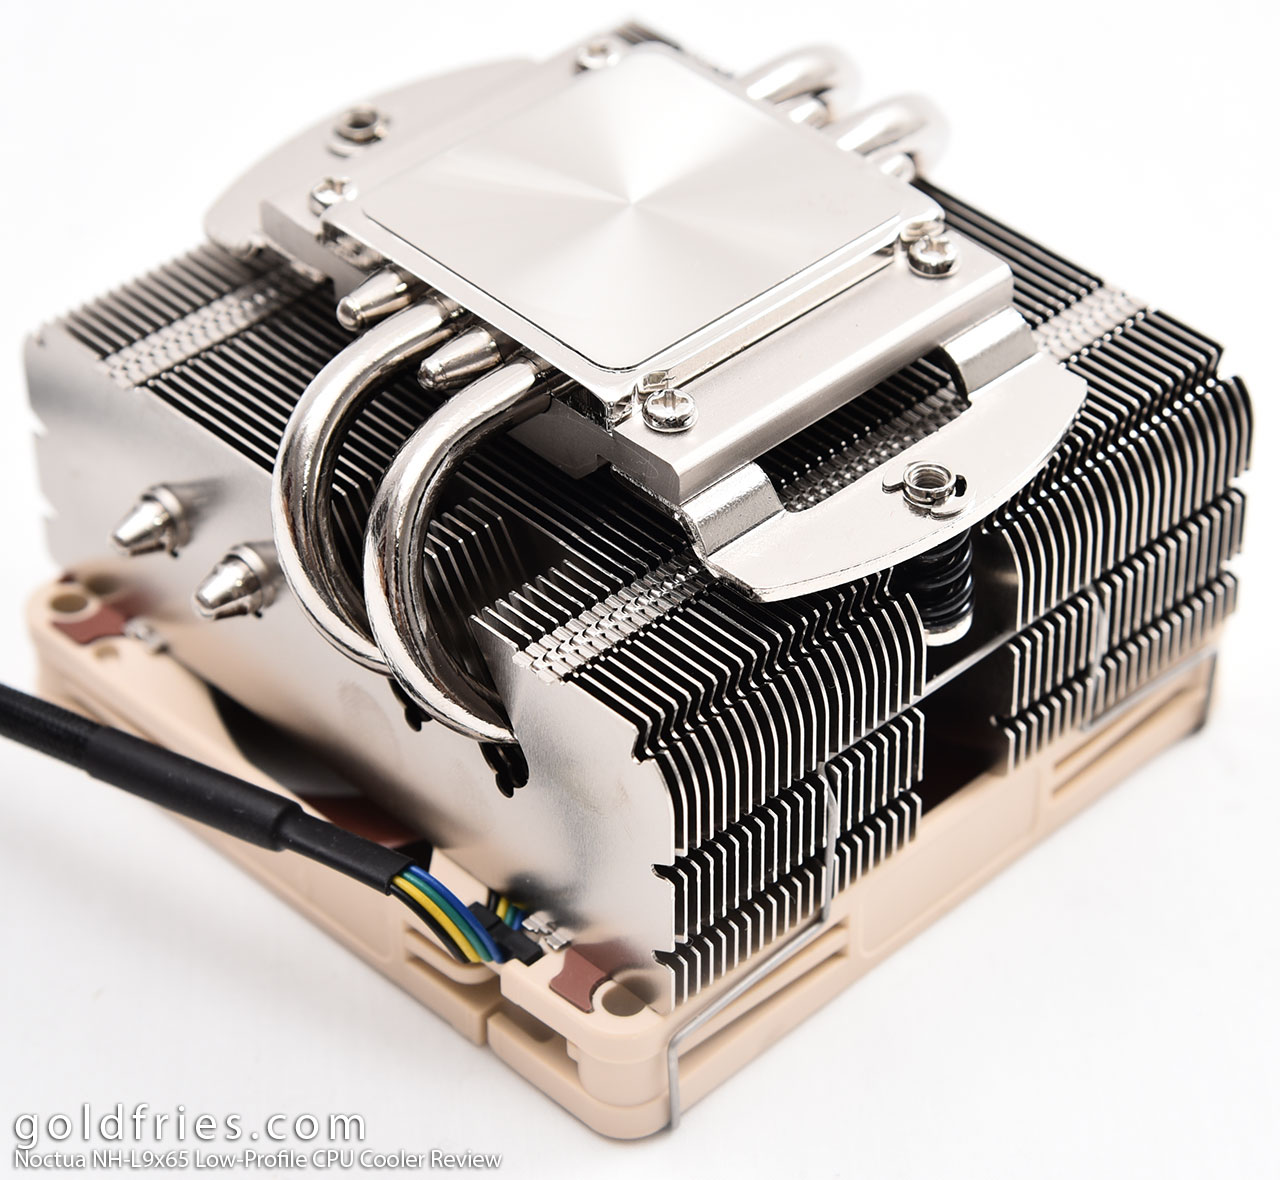 Noctua NH-L9x65 Low-Profile CPU Cooler Review